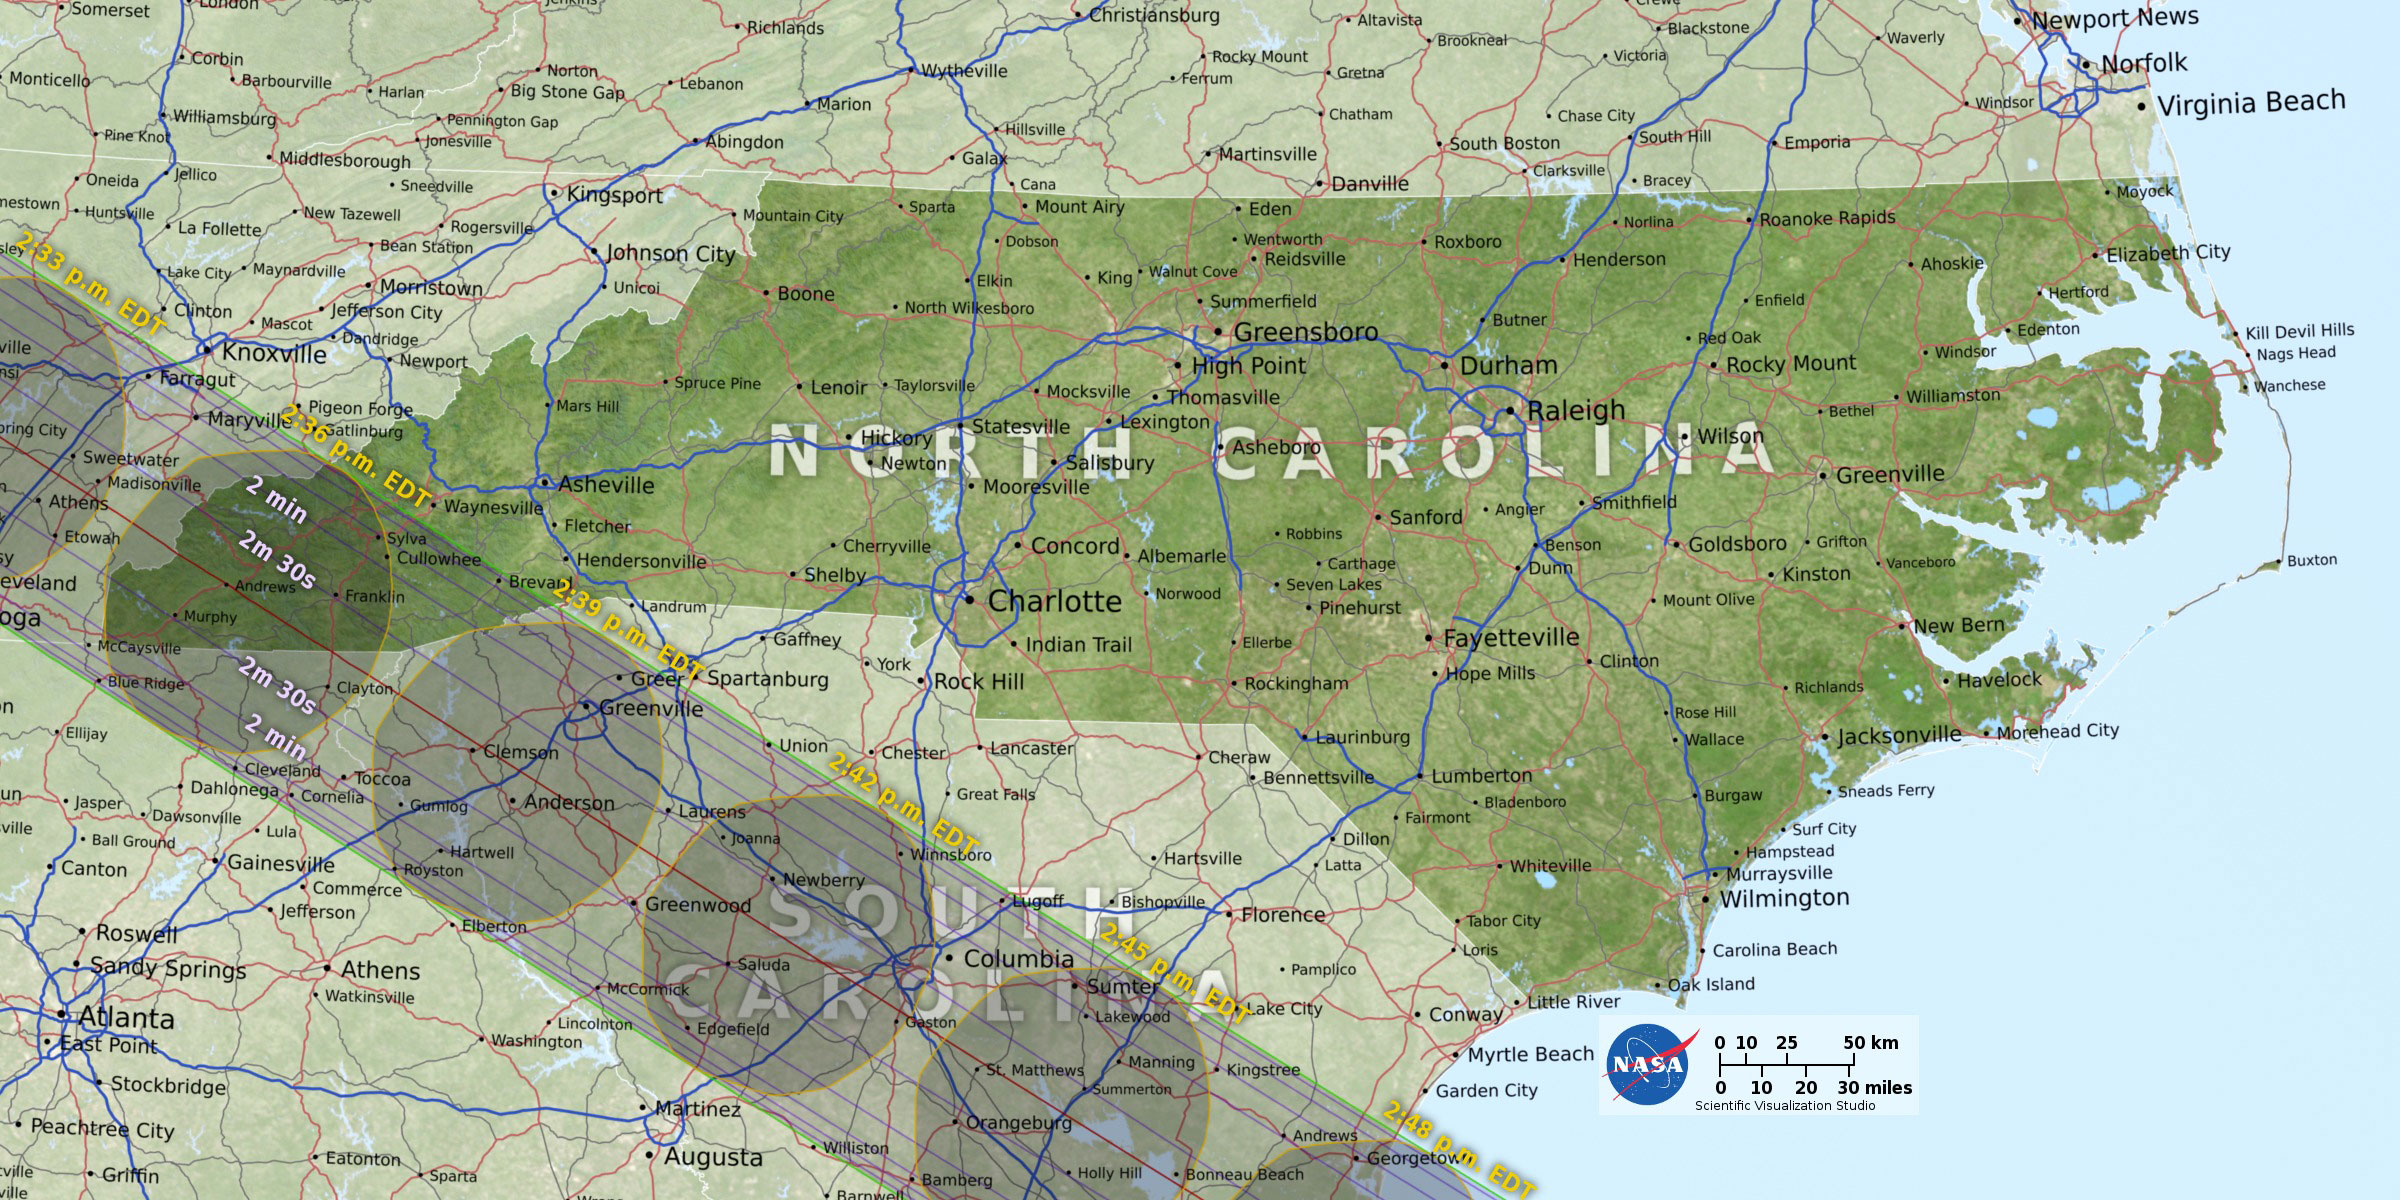 North Carolina also have areas that